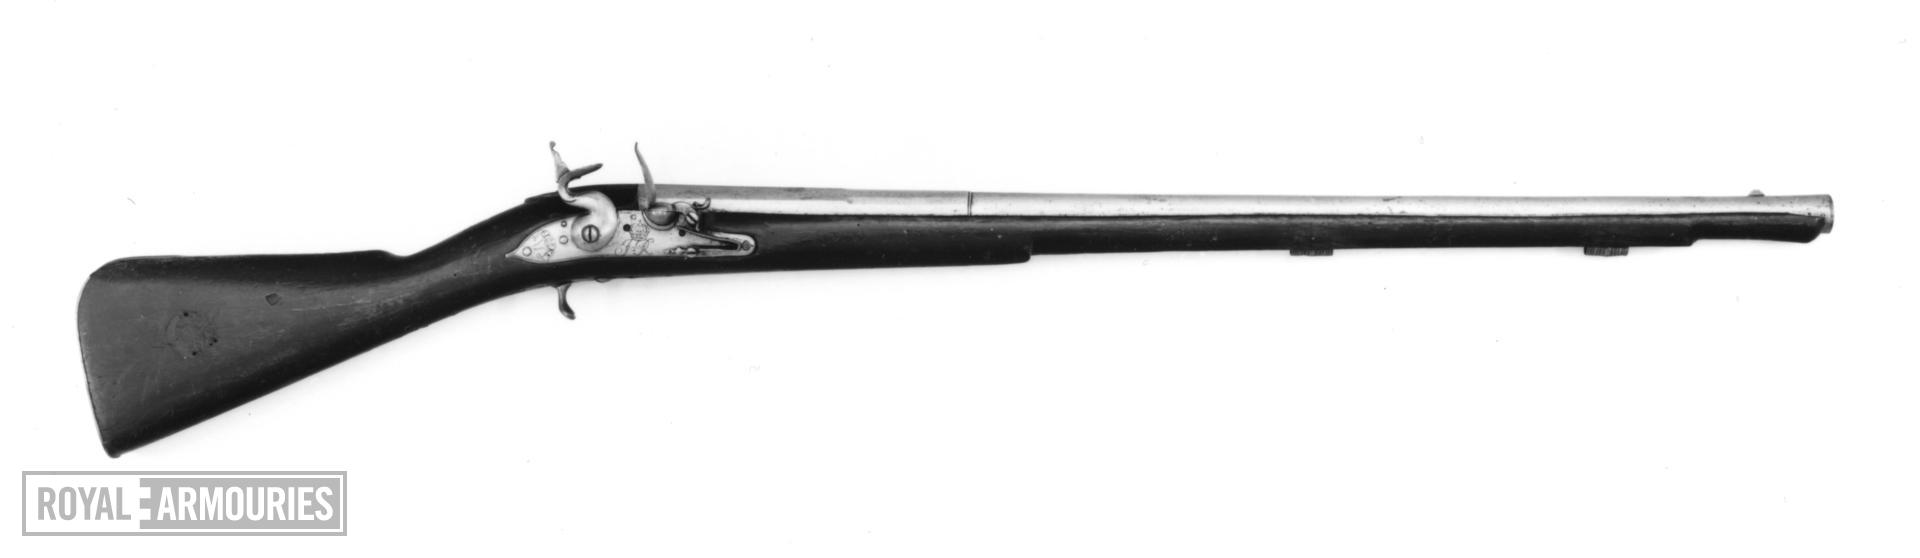 Flintlock muzzle-loading cavalry carbine - James II Pattern